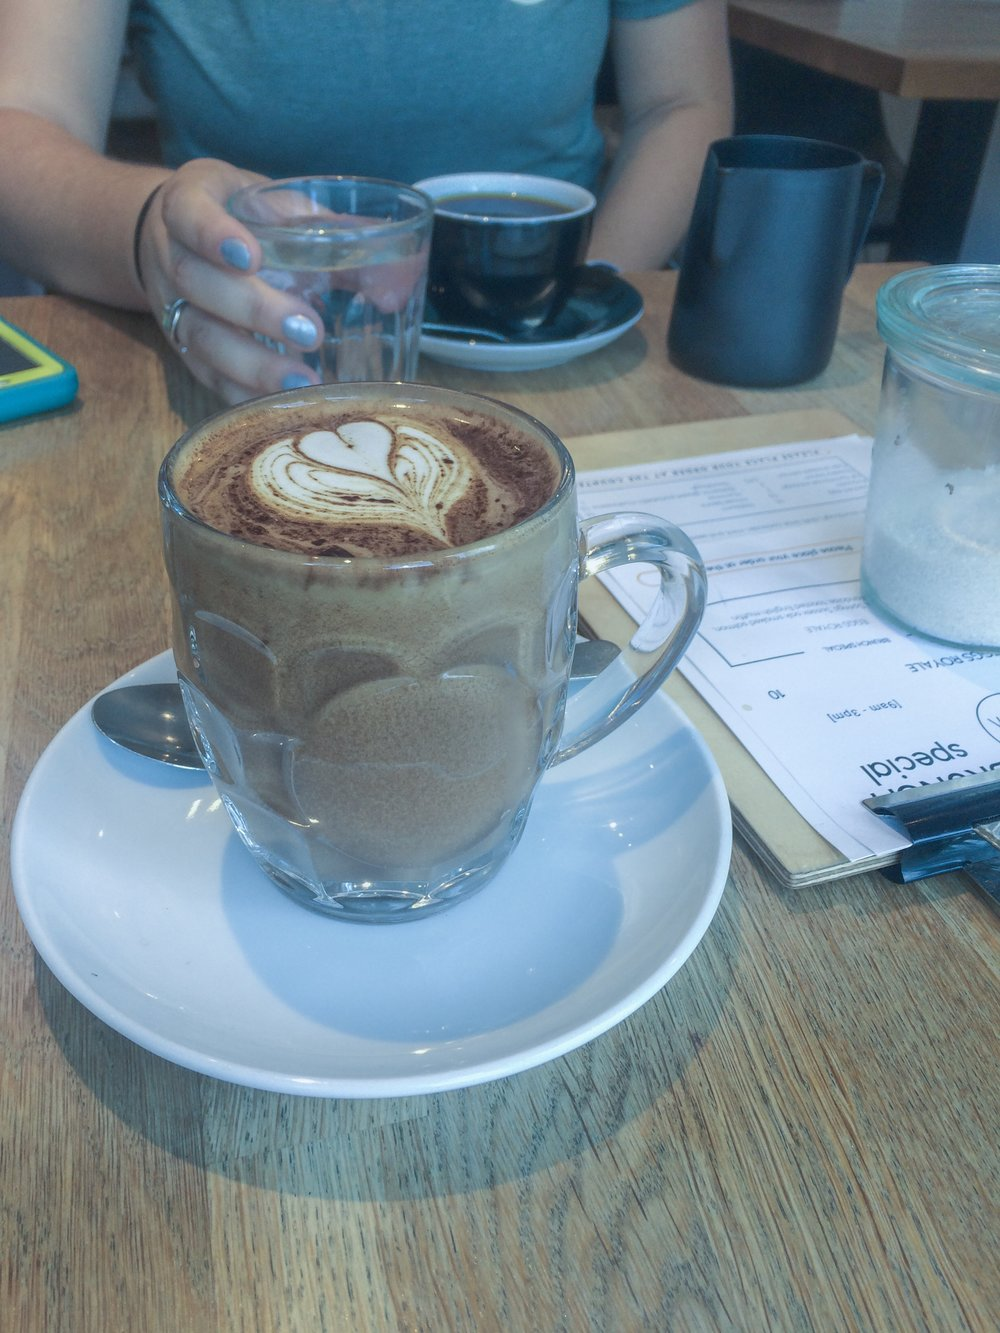 Image Description: a mocha in a glass cup with a heart design on the top sits on the table closest to the camera. Across the table, there is someone in a blue t-shirt with a cup of coffee in a black cup in front of them. Only their chest is visible. They hold a water glass in their left hand, nails painted with silver polish. A menu sits on the table next to them, with a glass jar full of sugar on top of it.